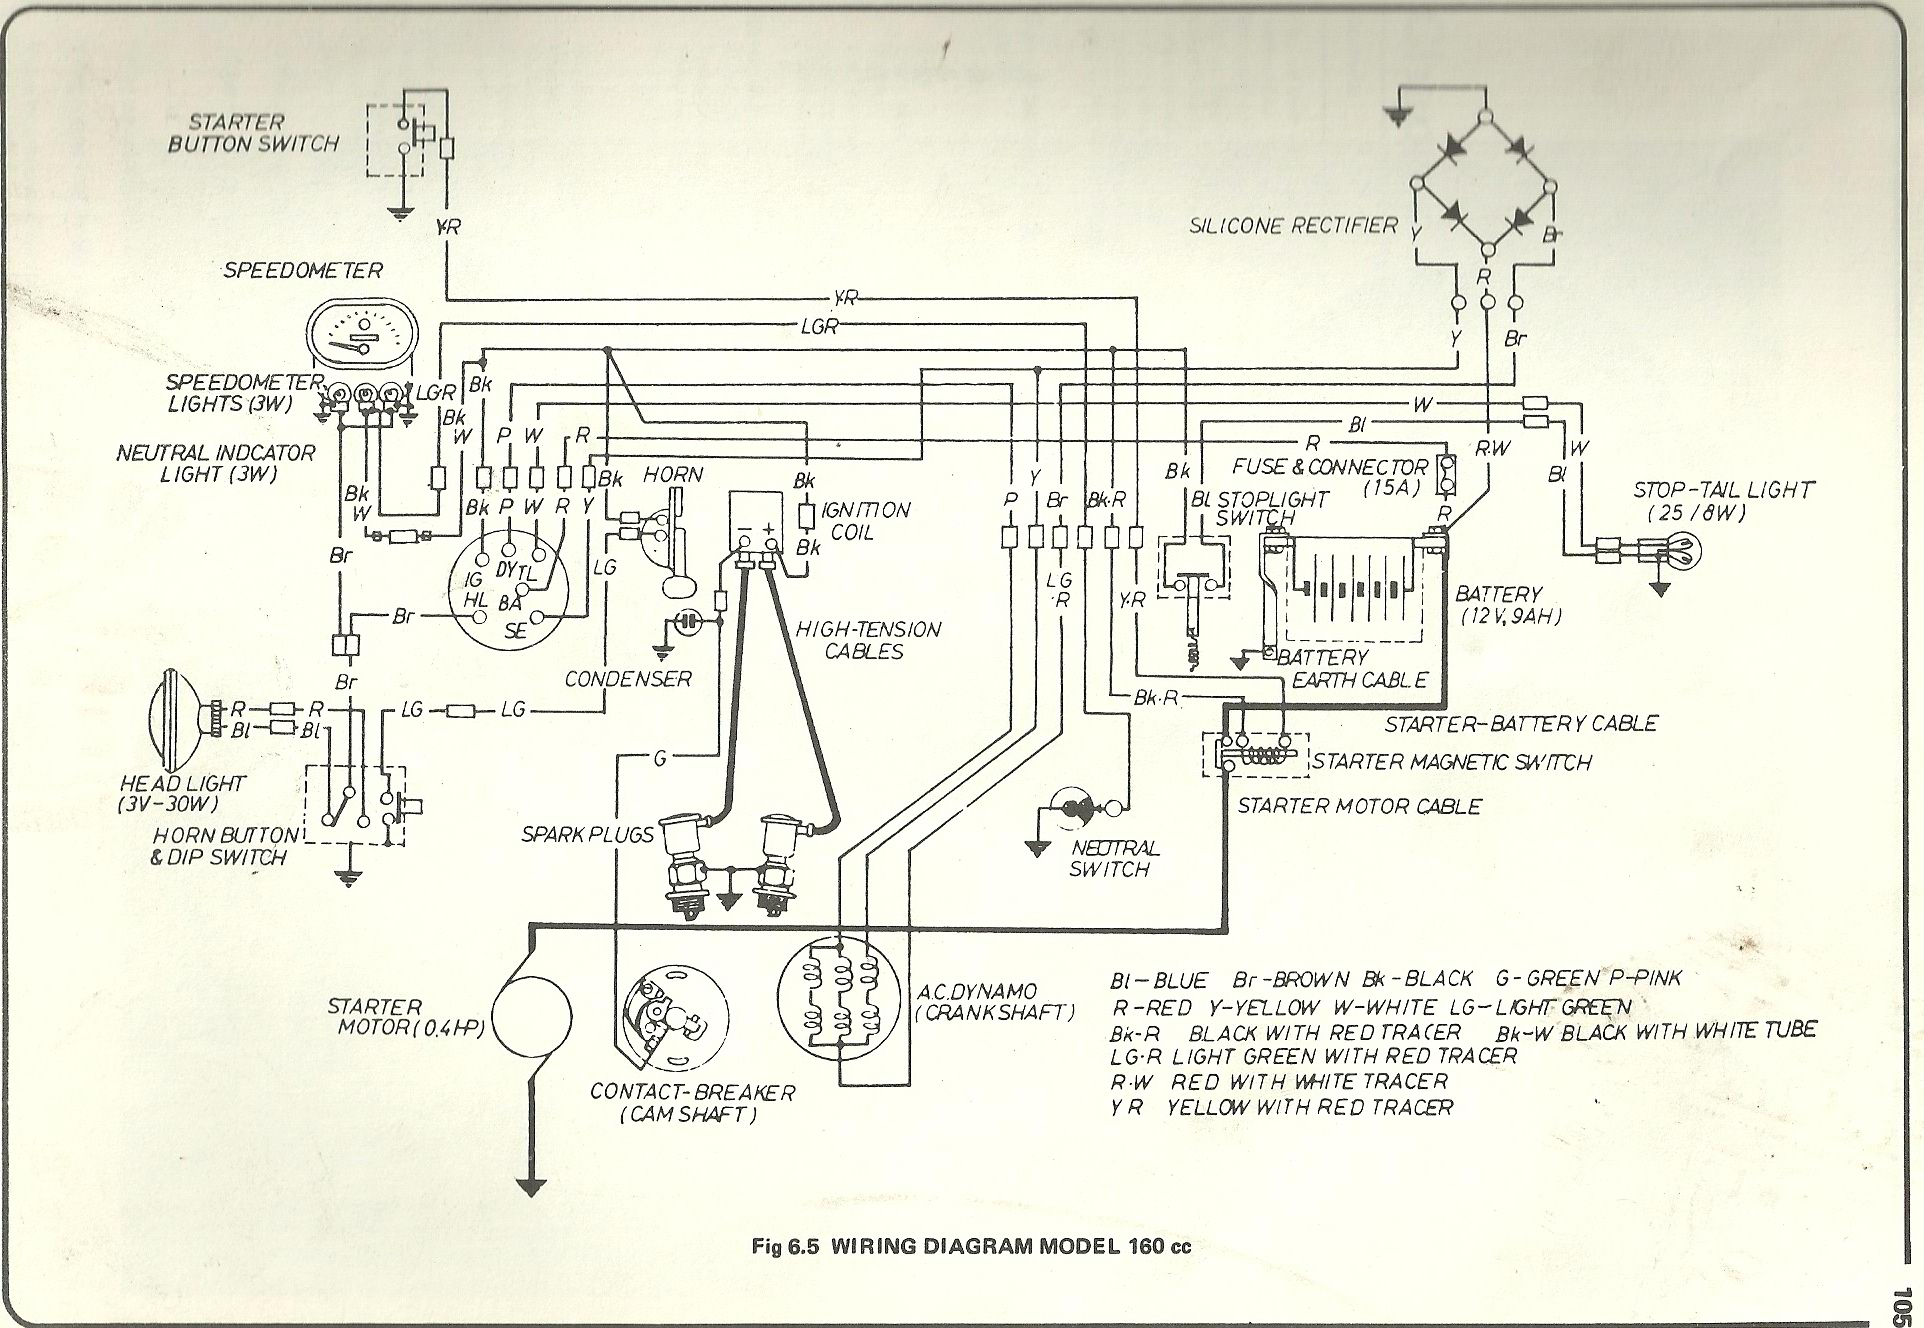 medium resolution of whirlpool microwave capacitor wiring diagram 03 navigator radio wiring electric motor capacitor wiring diagram whirlpool microwave capacitor wiring diagram